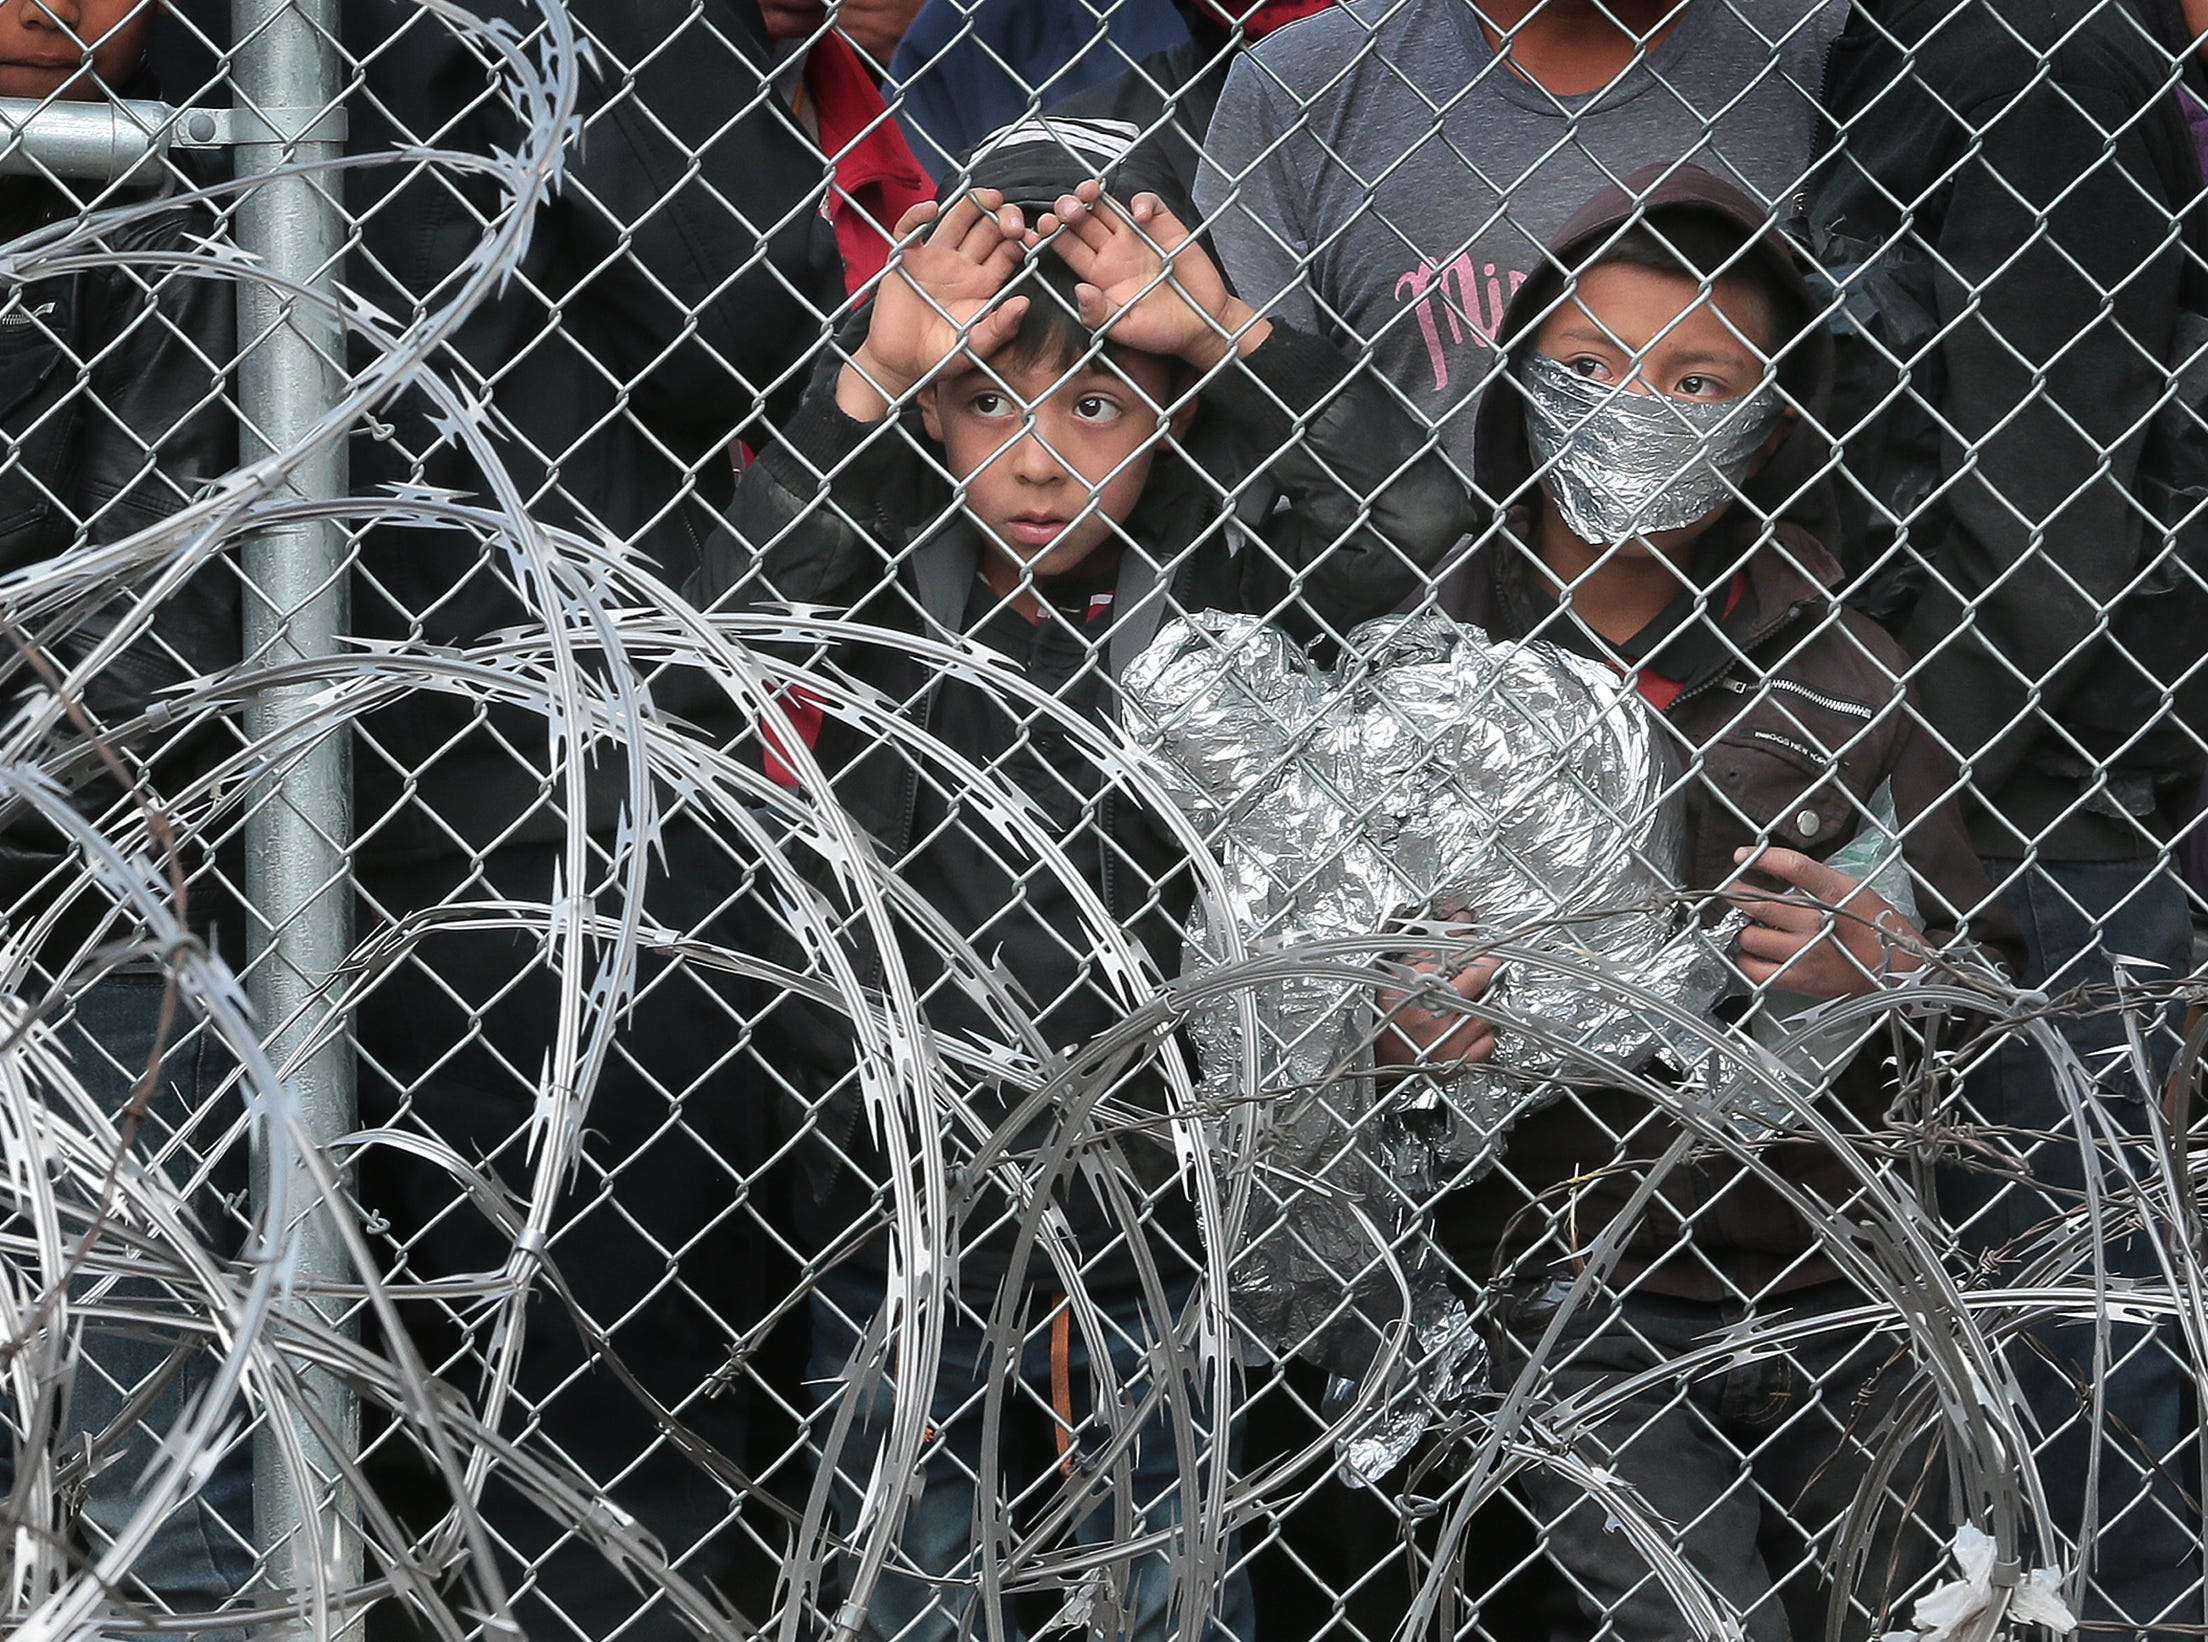 Hundreds of migrants are being held beneath the Paso Del Norte International Bridge in El Paso as U.S. Customs and Border Protection has run out of space to process the asylum seekers. Above, two boys look out from the fence at the bridge as protestors demand their release.